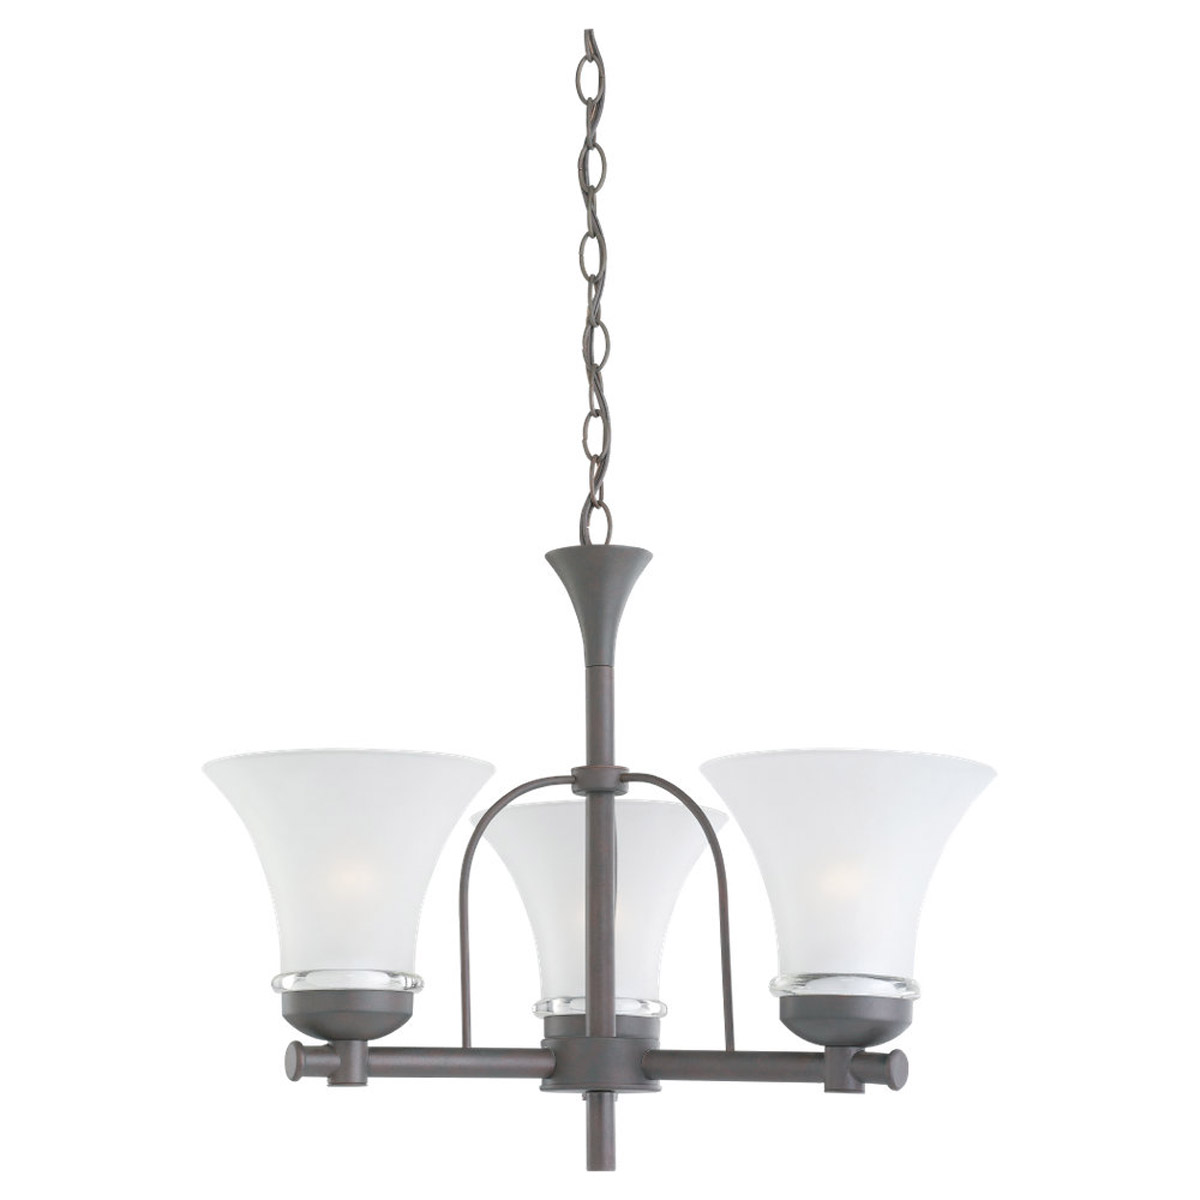 Sea Gull Lighting Newport 3 Light Fluorescent Chandelier in Misted Bronze 31282BLE-814